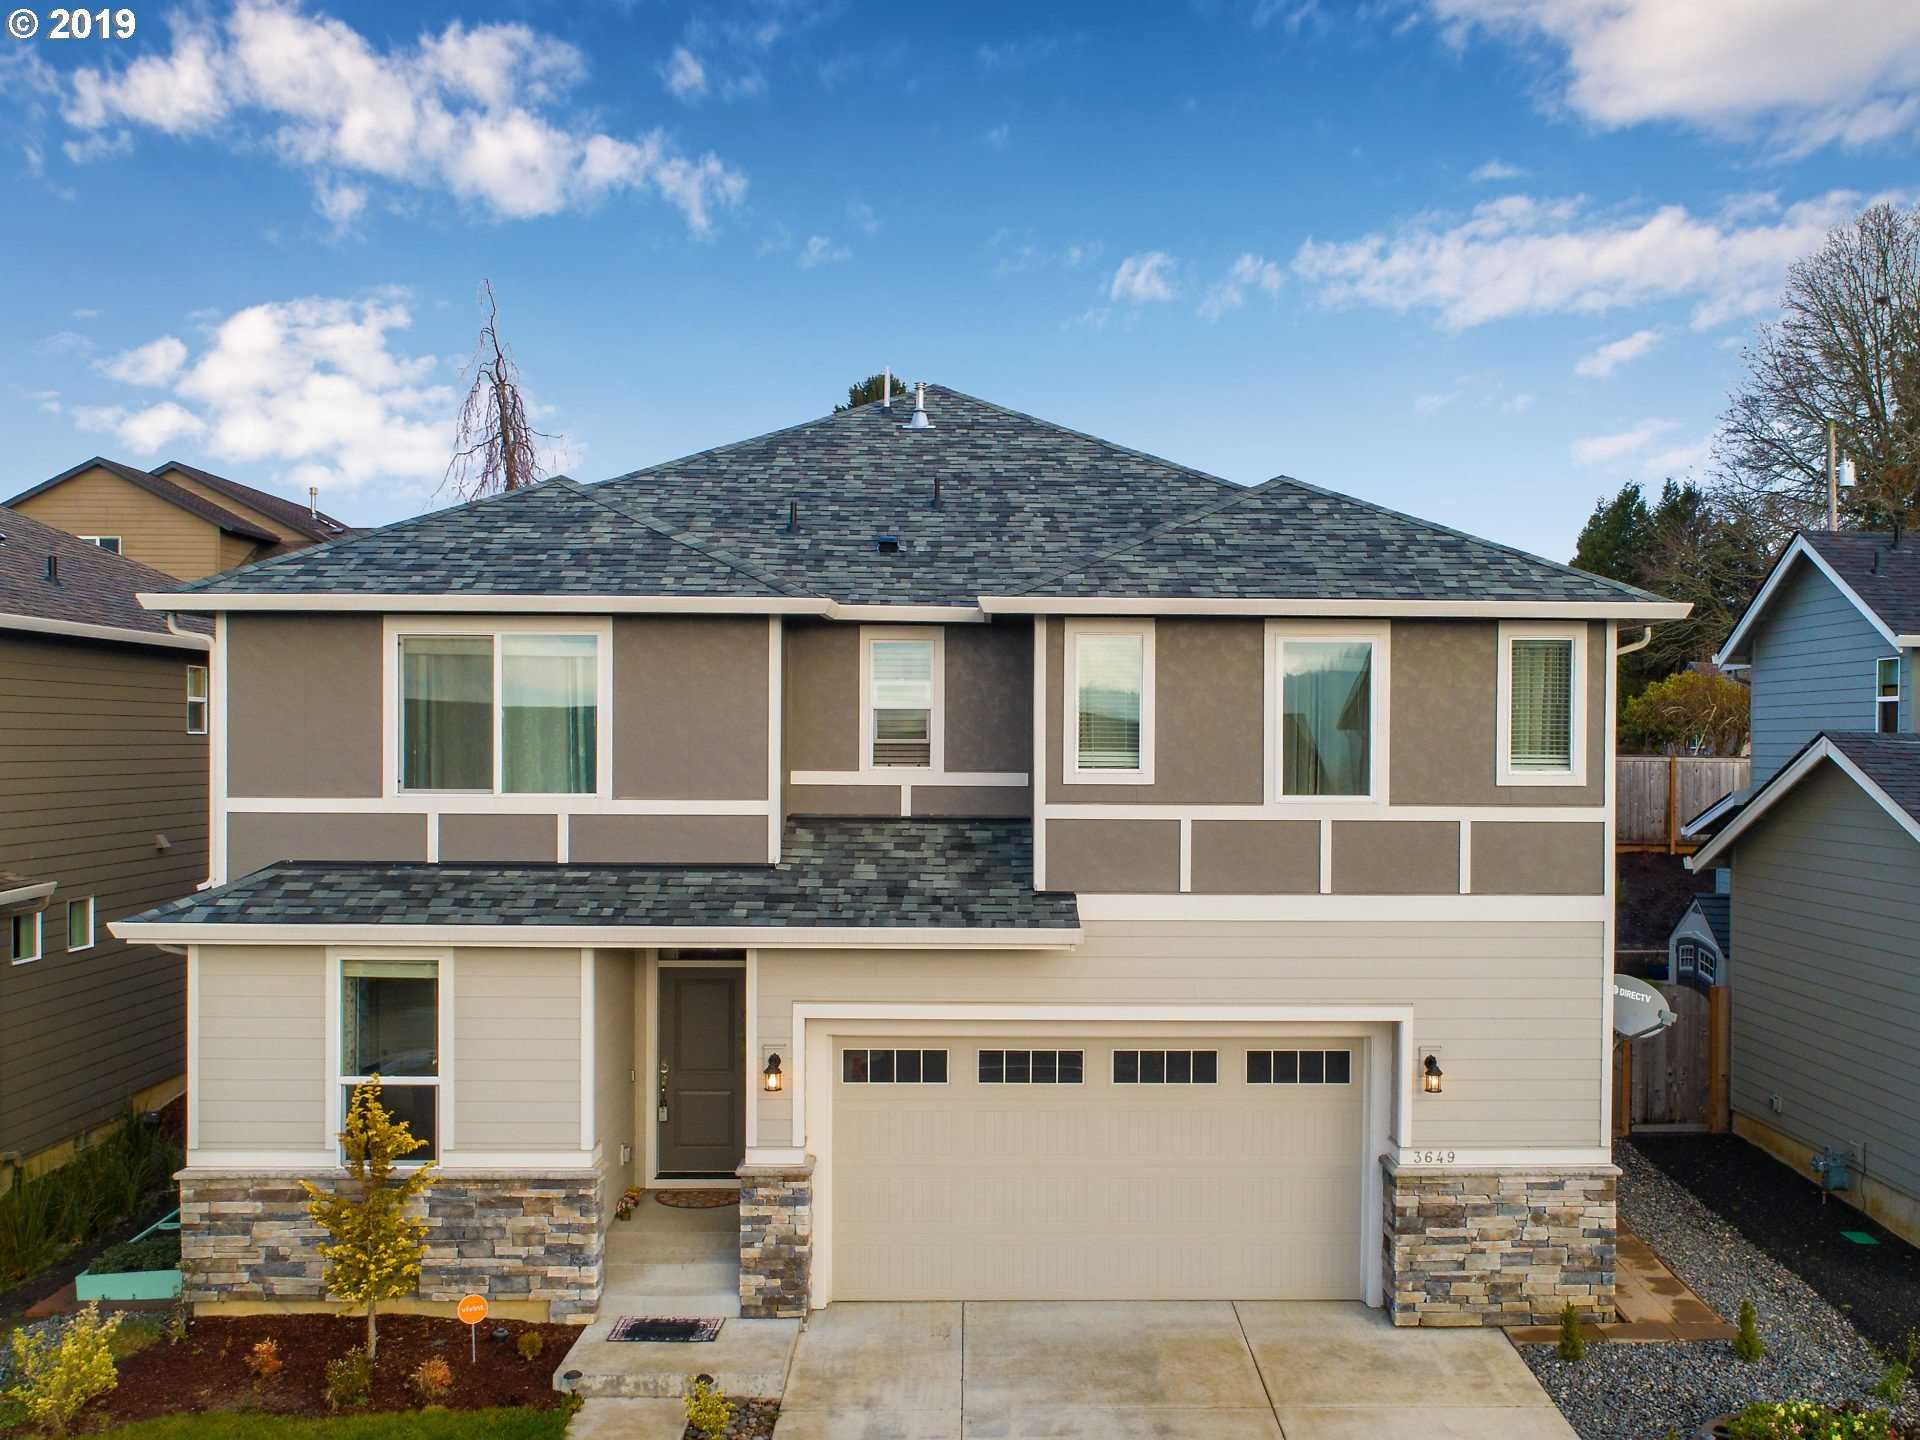 $550,000 - 5Br/3Ba -  for Sale in Gresham